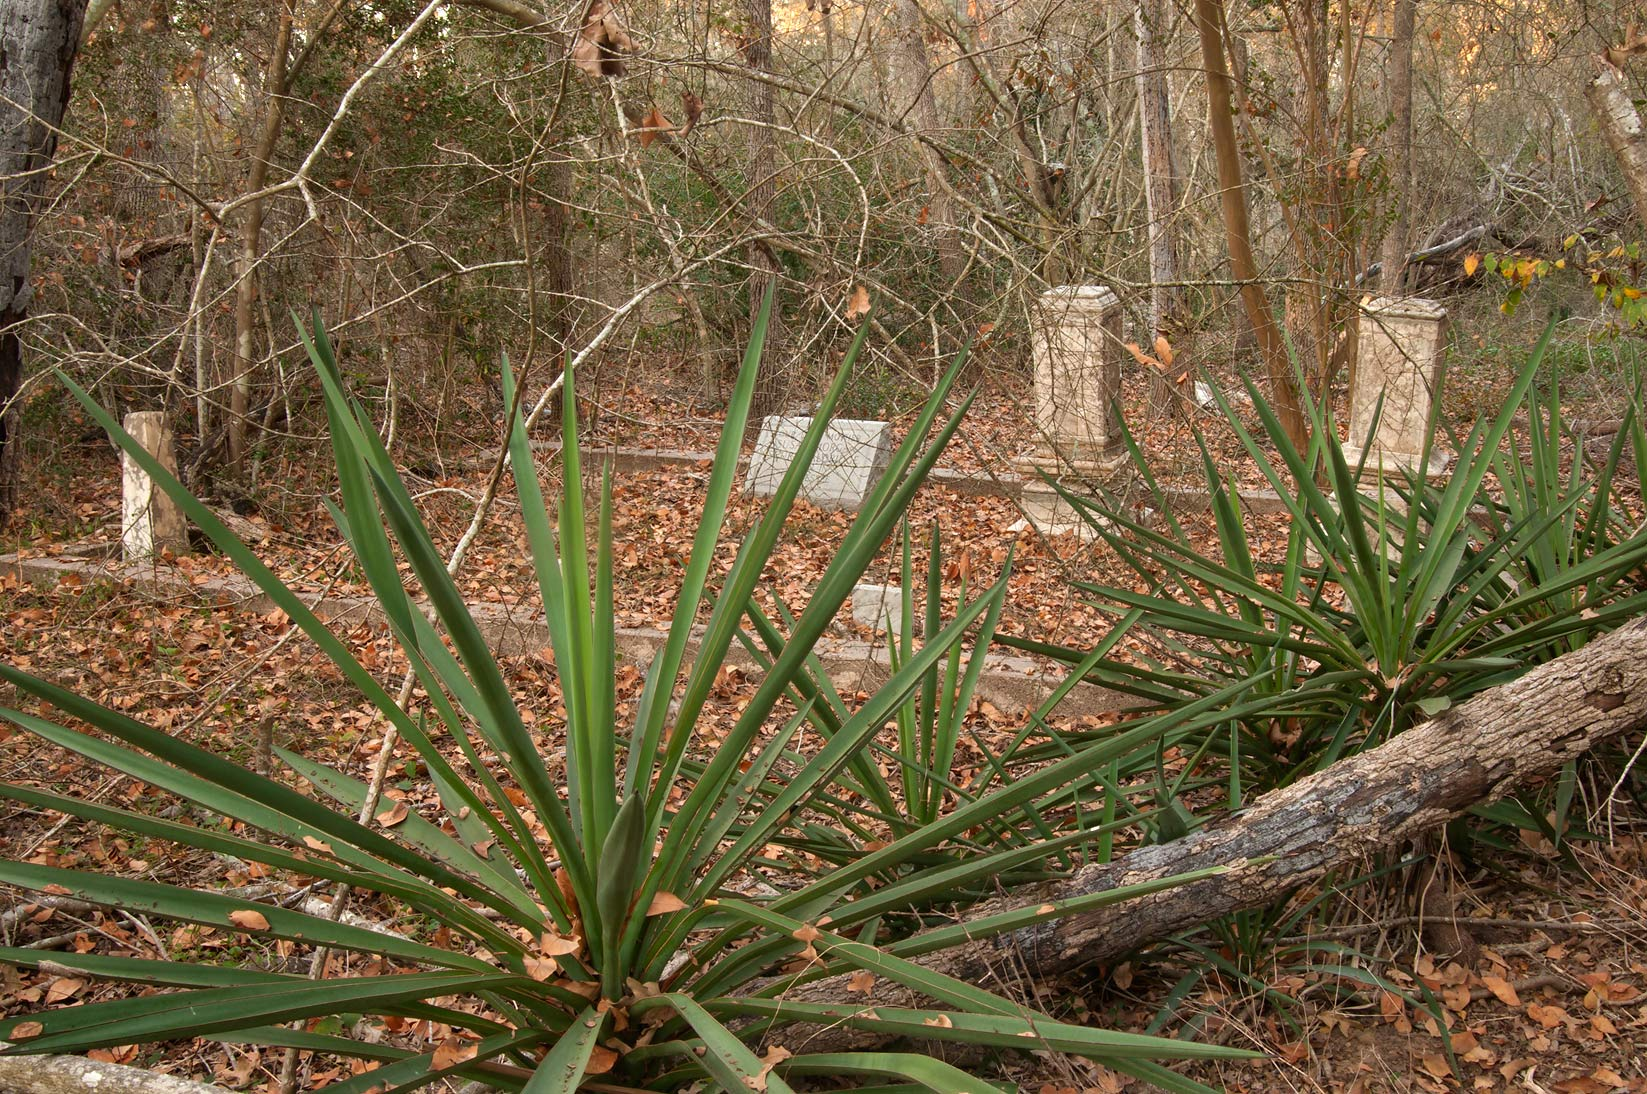 Undiscovered section of Washington Cemetery overgrown by jungles. Washington, Texas